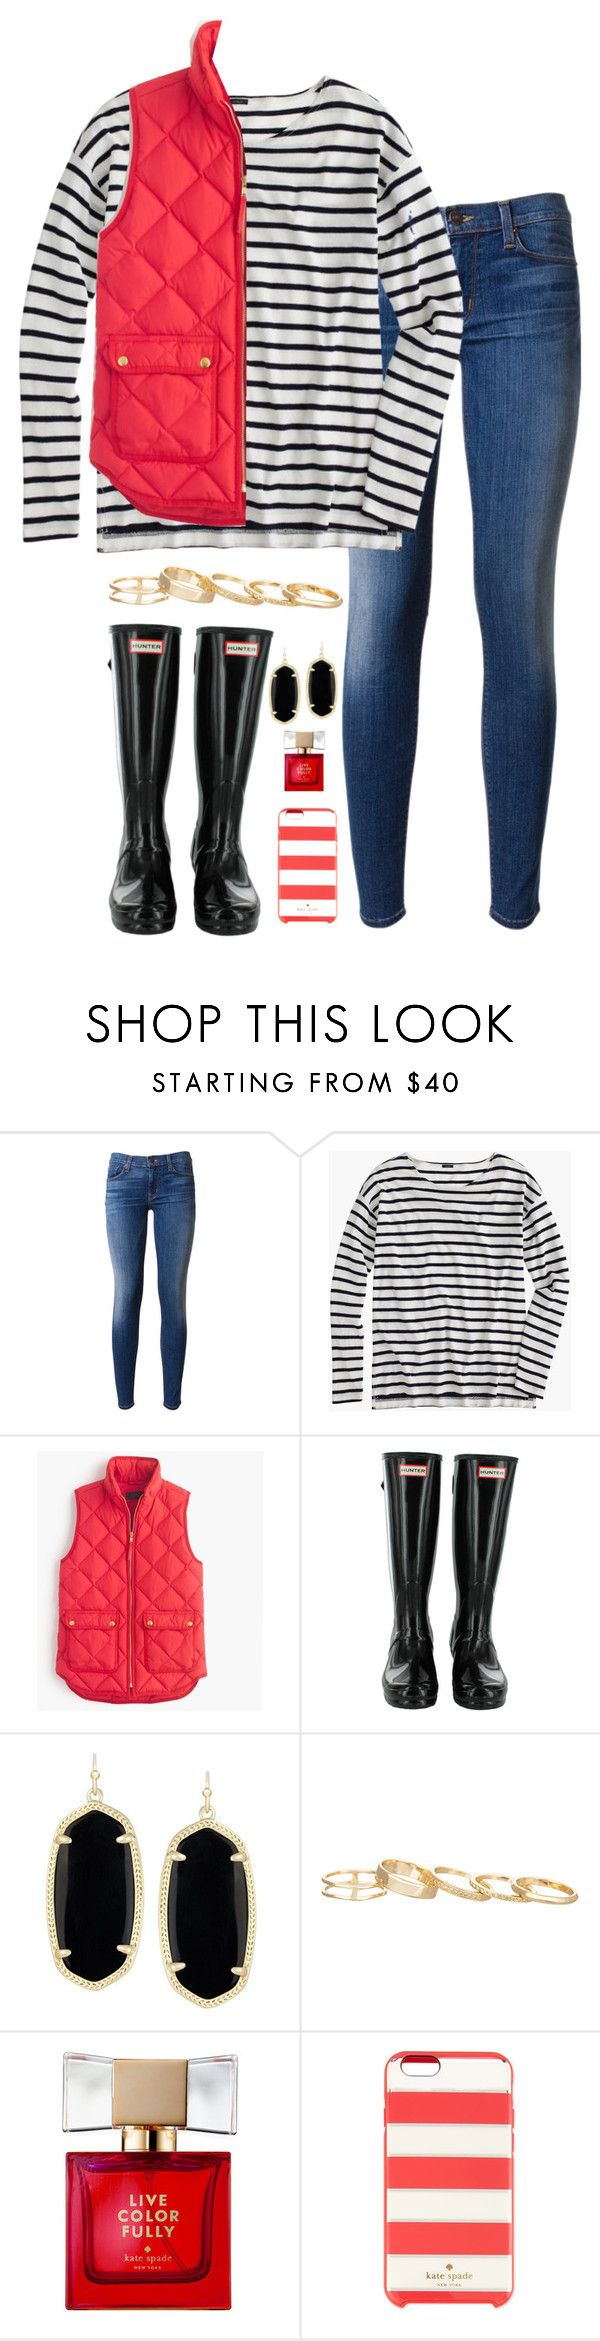 """""""lit"""" by tabooty ❤ liked on Polyvore featuring Hudson, J.Crew, Kendra Scott and Kate Spade"""